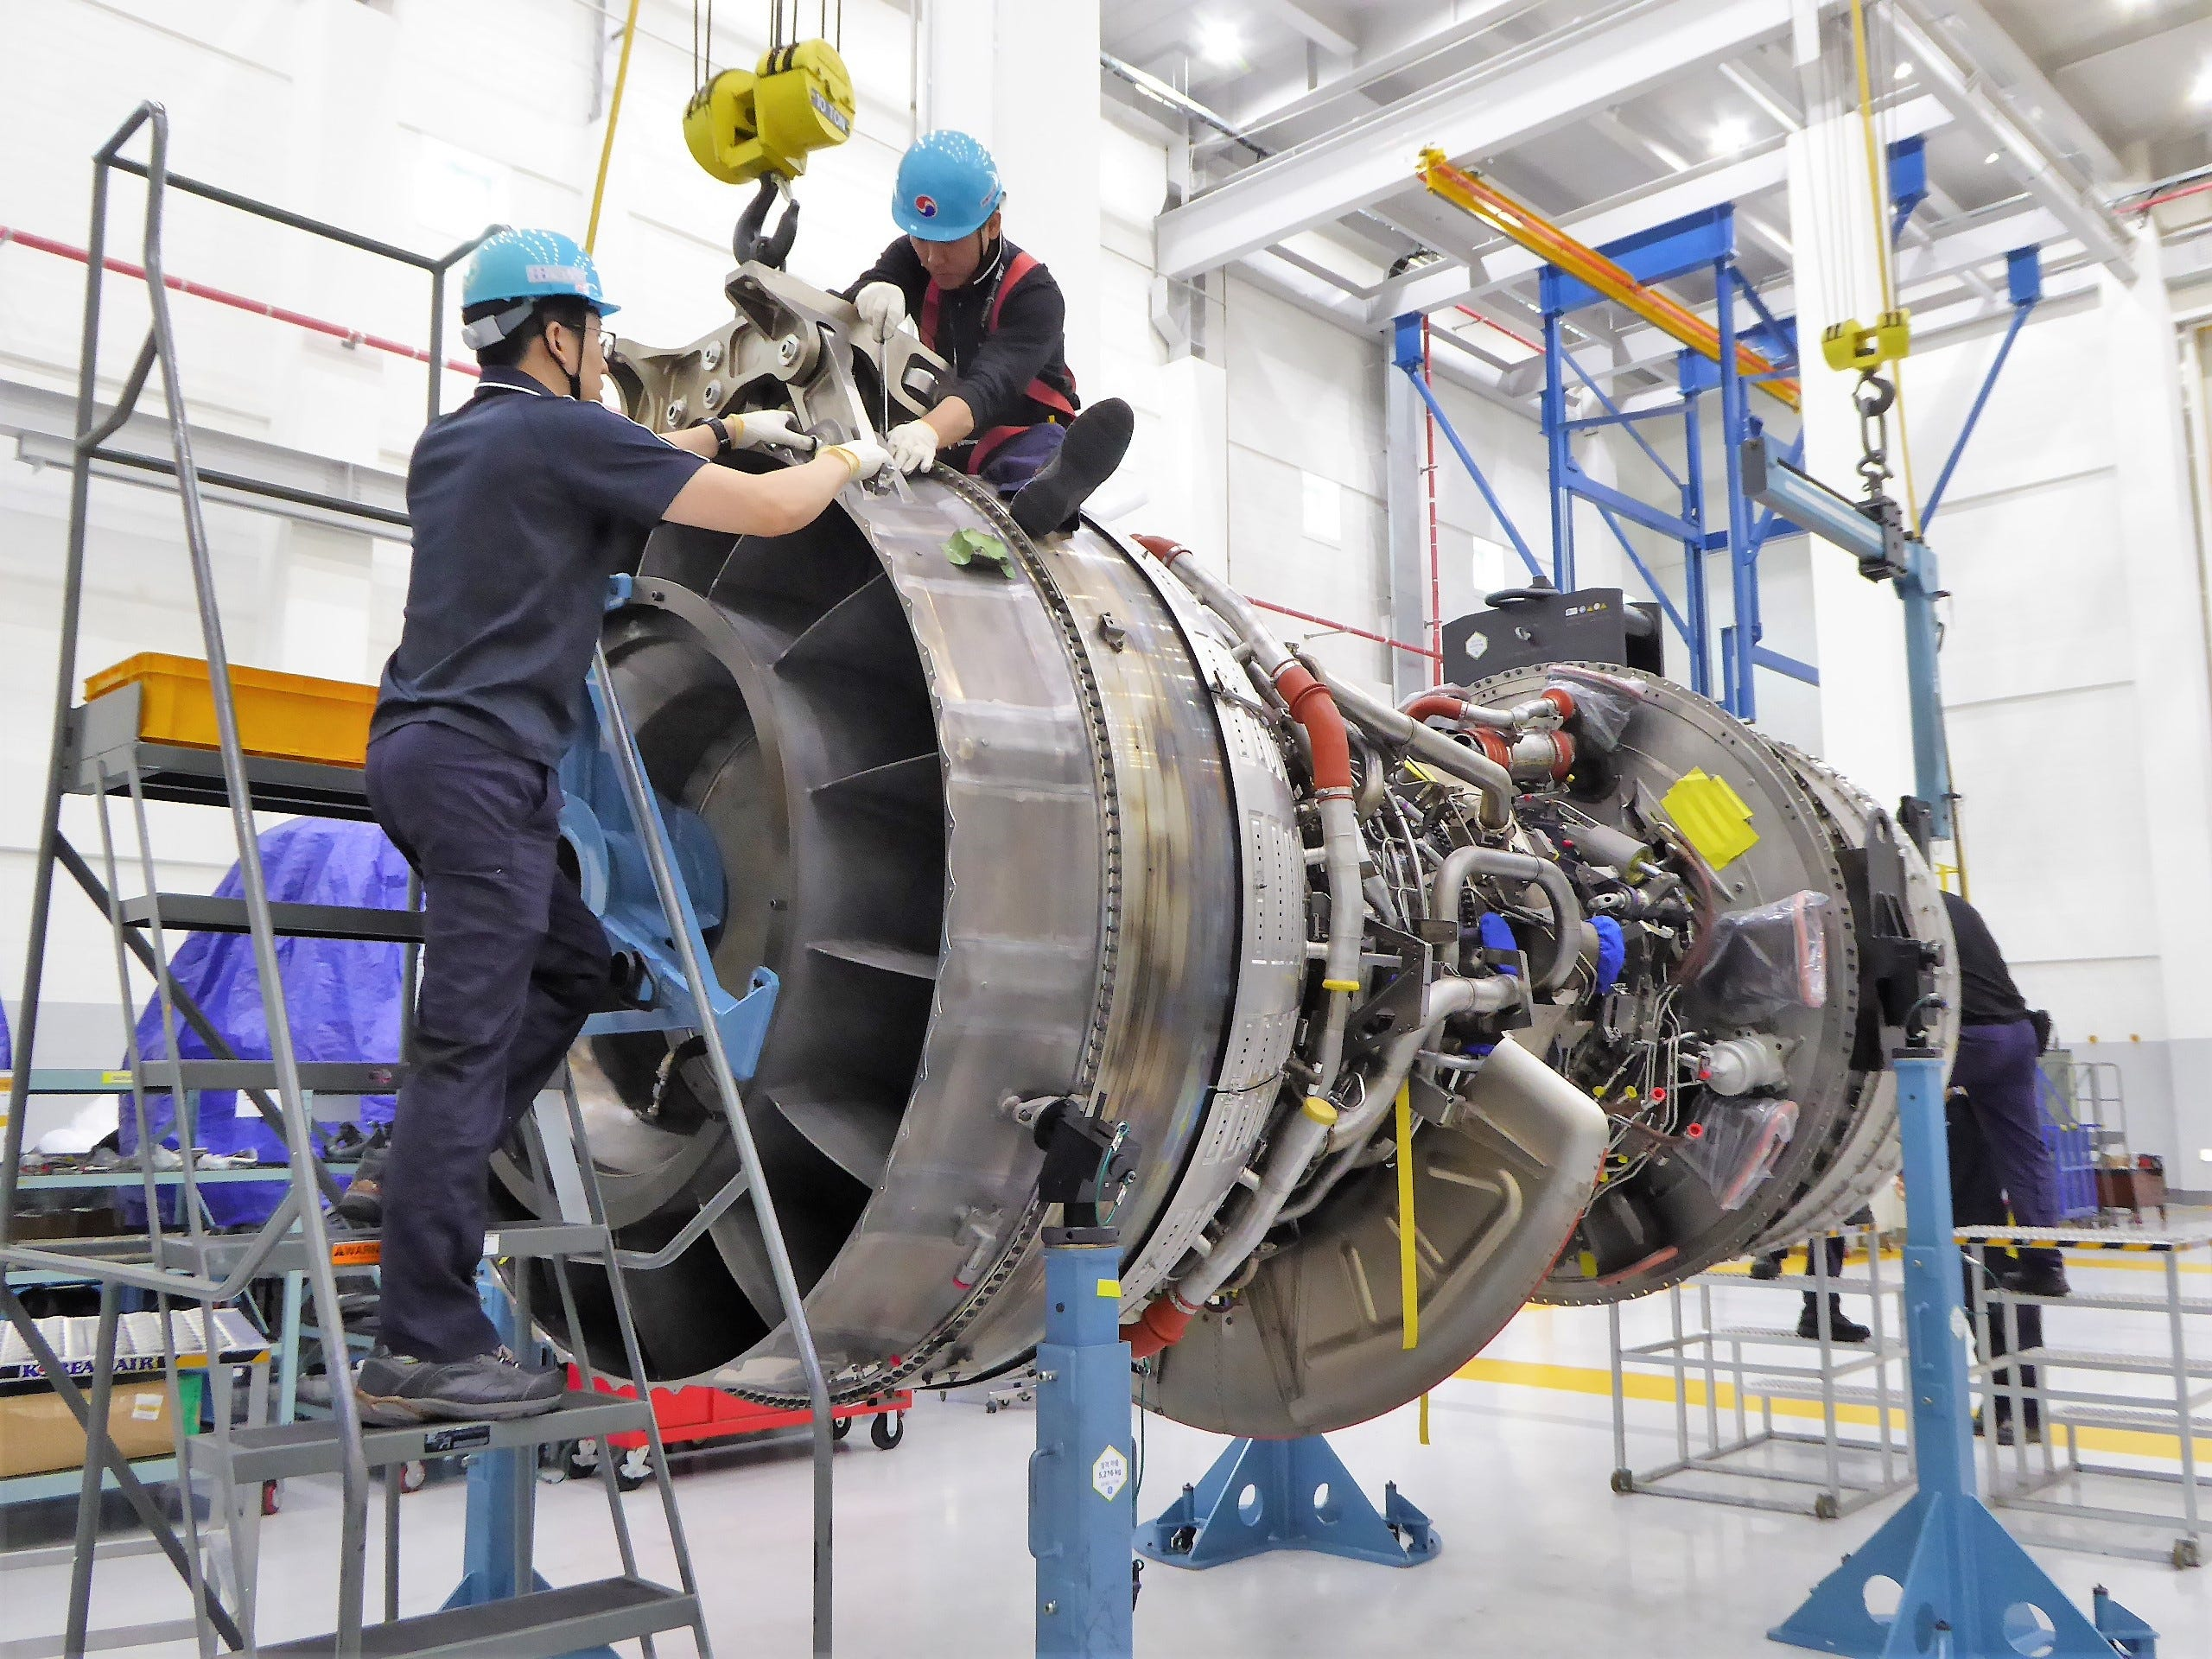 Behind the scenes: See a major airline's tech and engine-test facilities